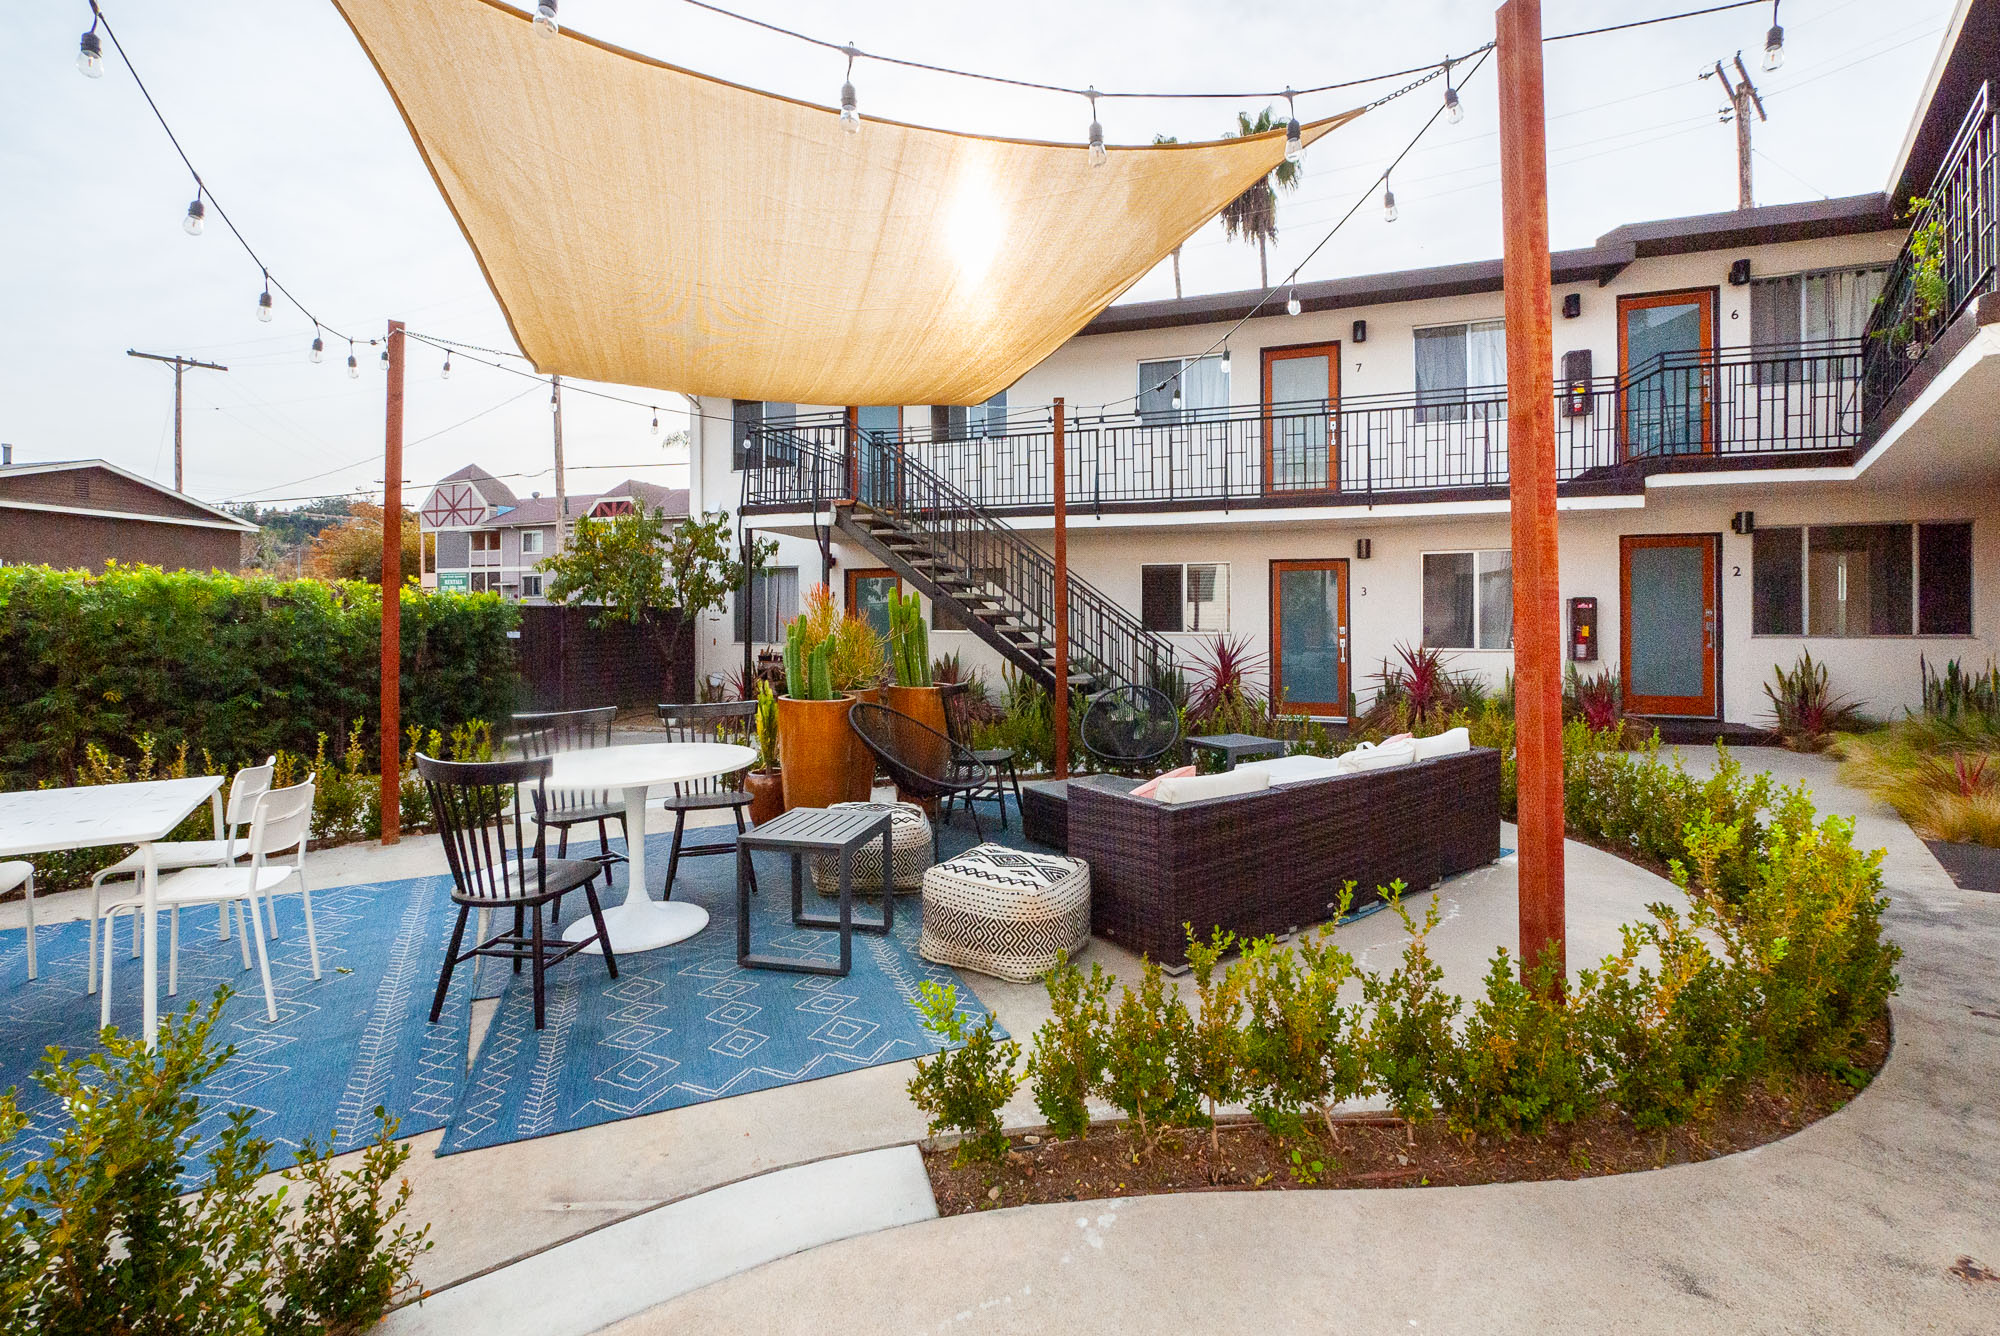 Minutes from All of Figueroa Blvd | Gated Parking | Upper Floor| Huge Bedroom Closet | Beamed Ceilings